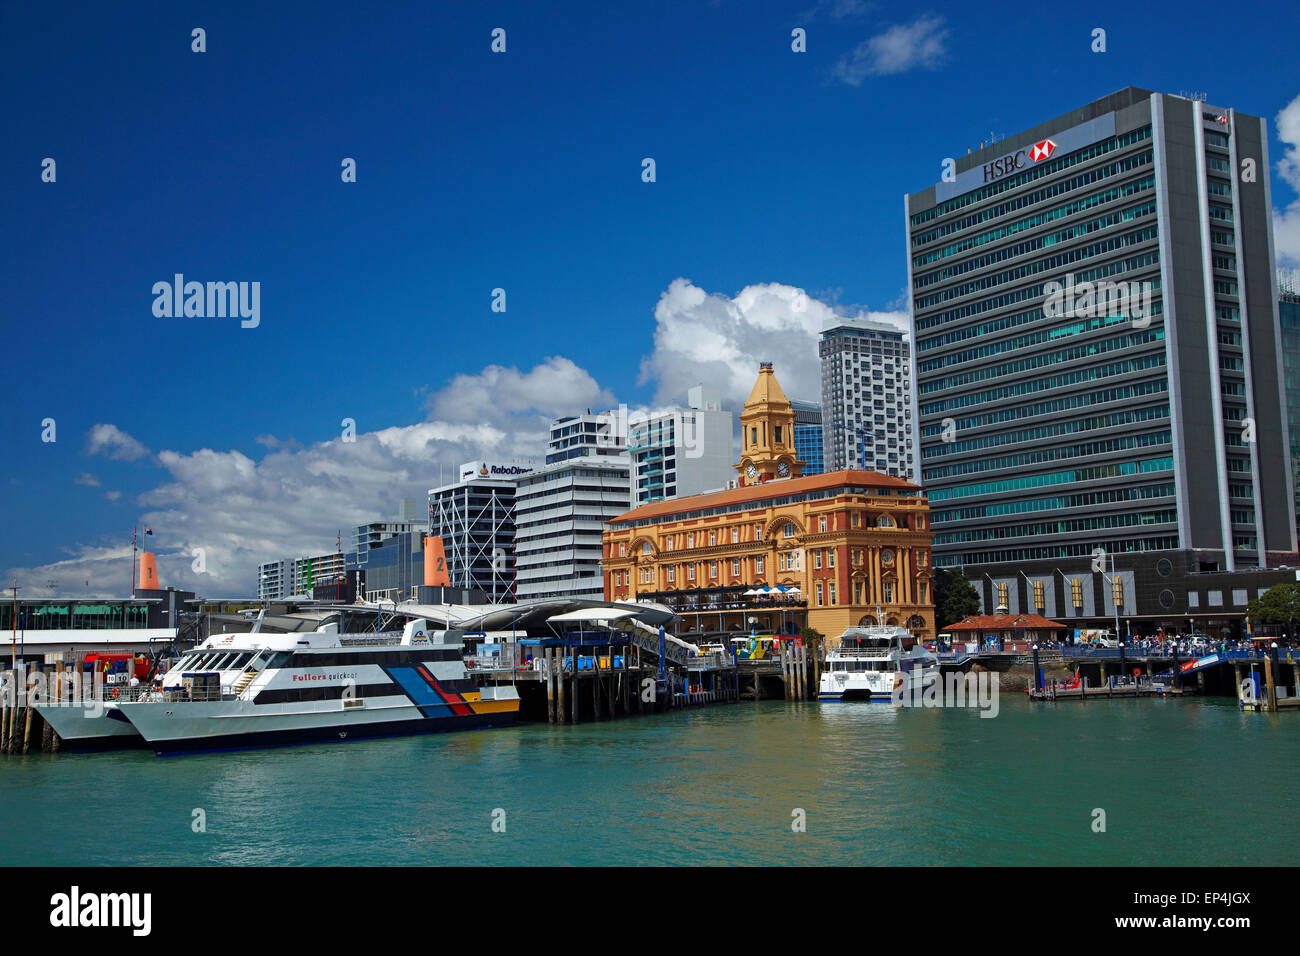 Auckland Ferry Terminal, and historic Ferry Building, Auckland waterfront, North Island, New Zealand - Stock Image